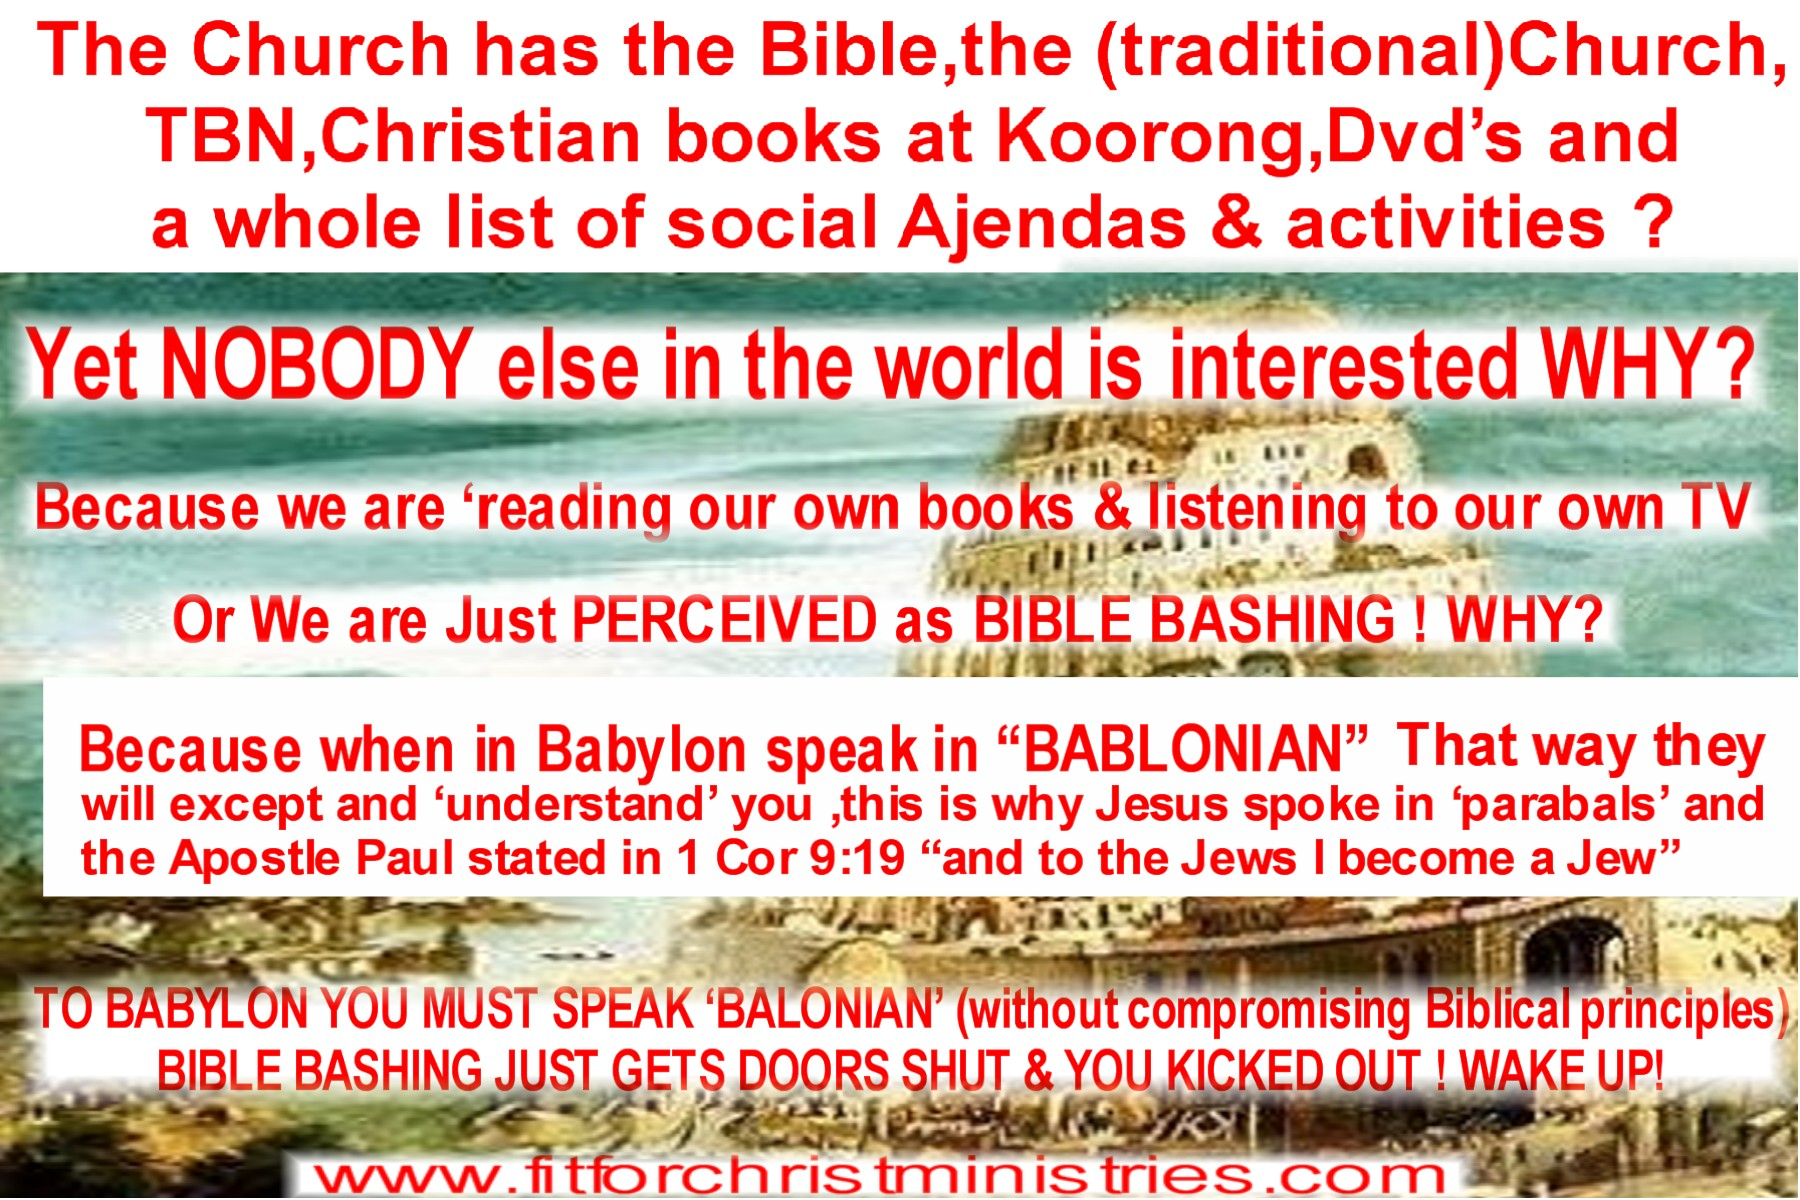 Speak Babylonian